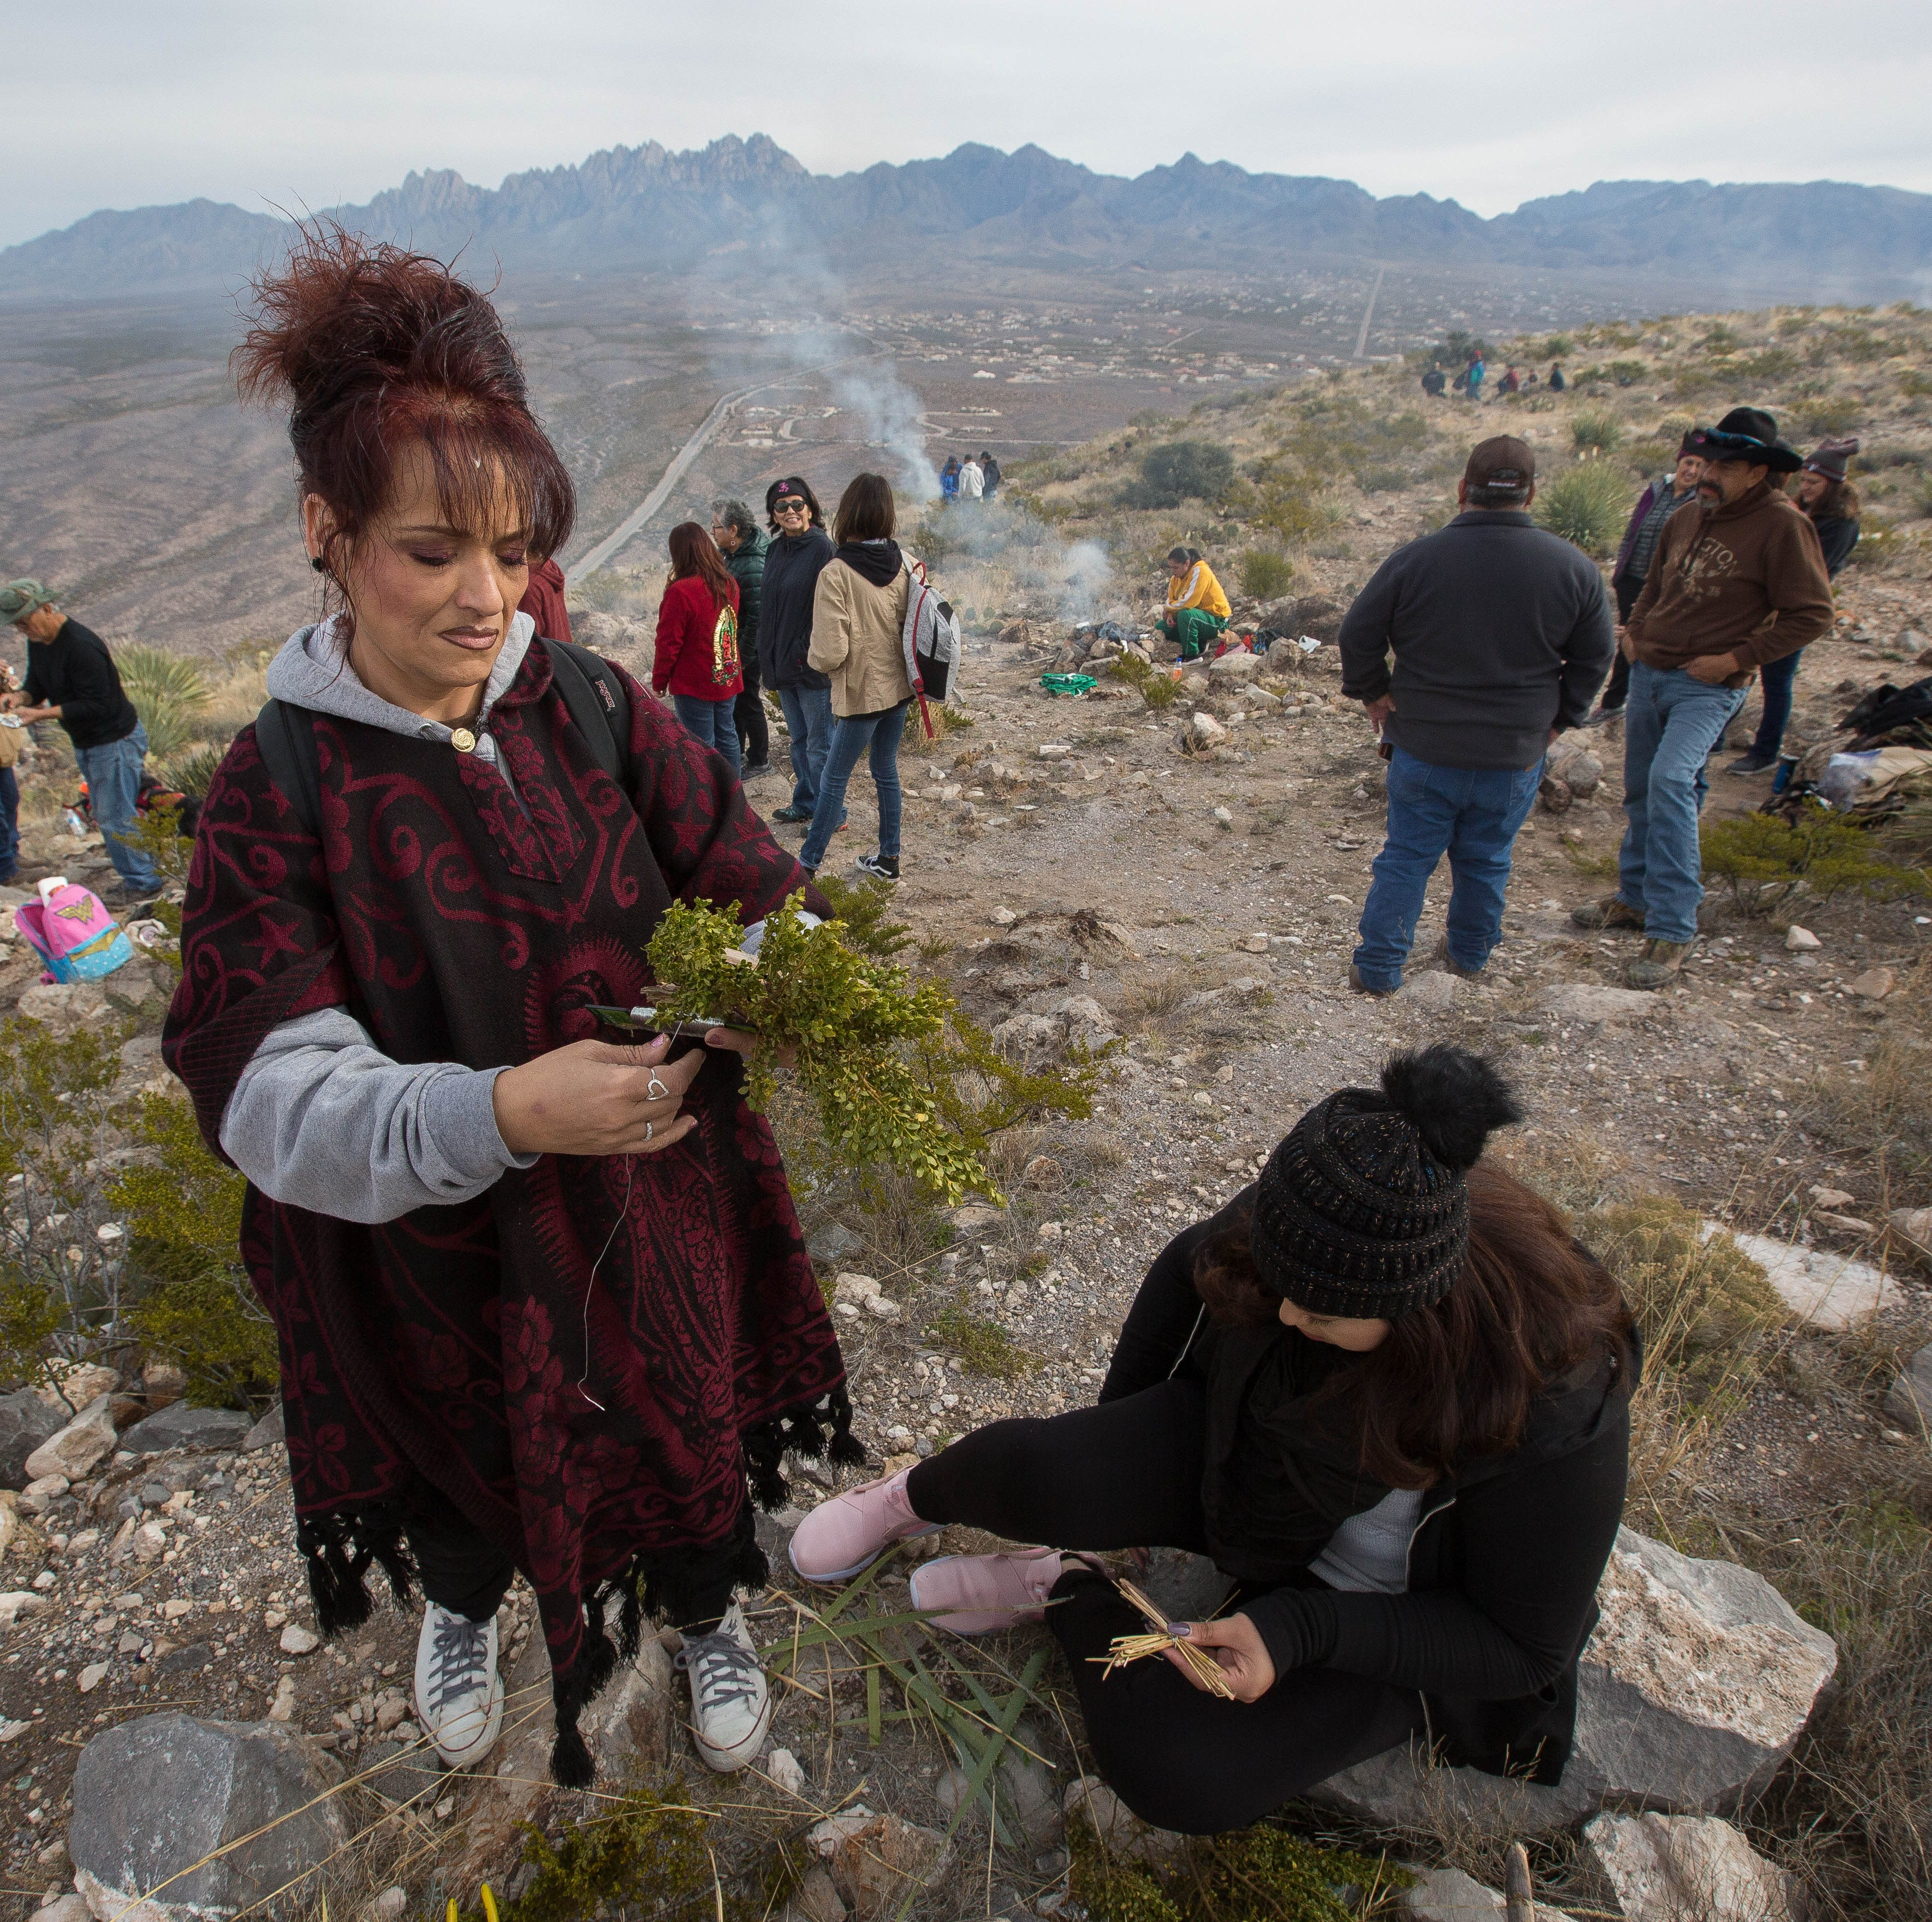 Pilgrims cross Las Cruces to climb Tortugas Mountain in 108th annual procession